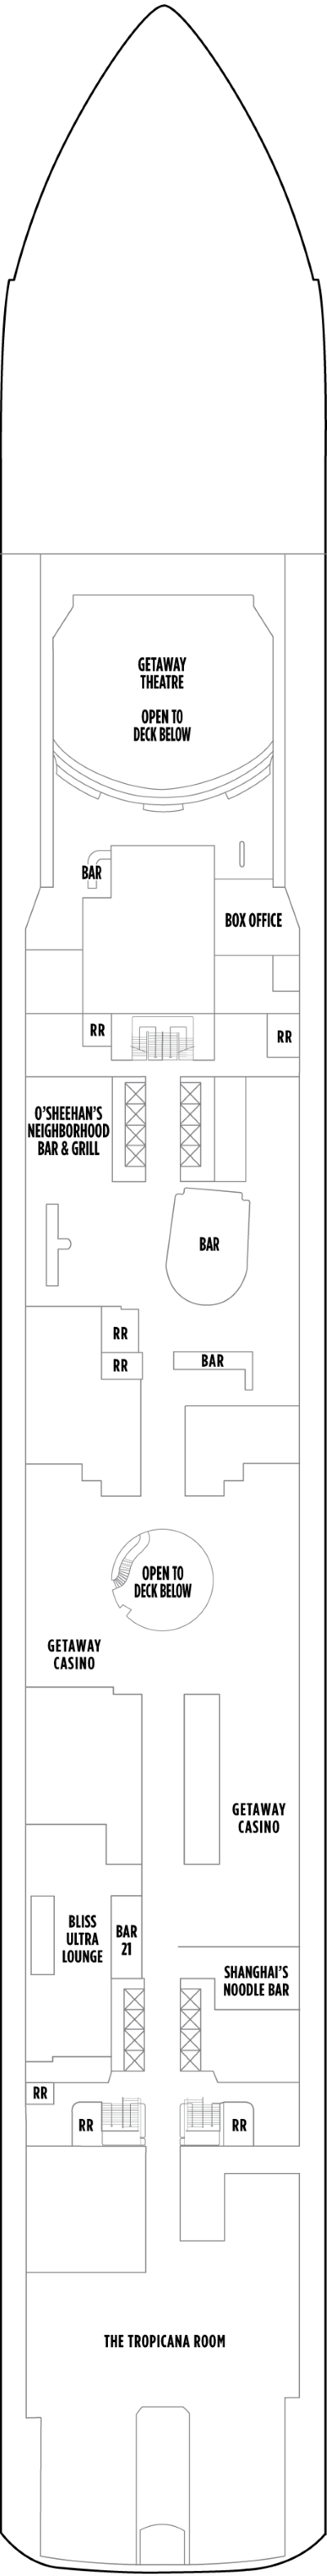 Norwegian Getaway Deck 7 layout